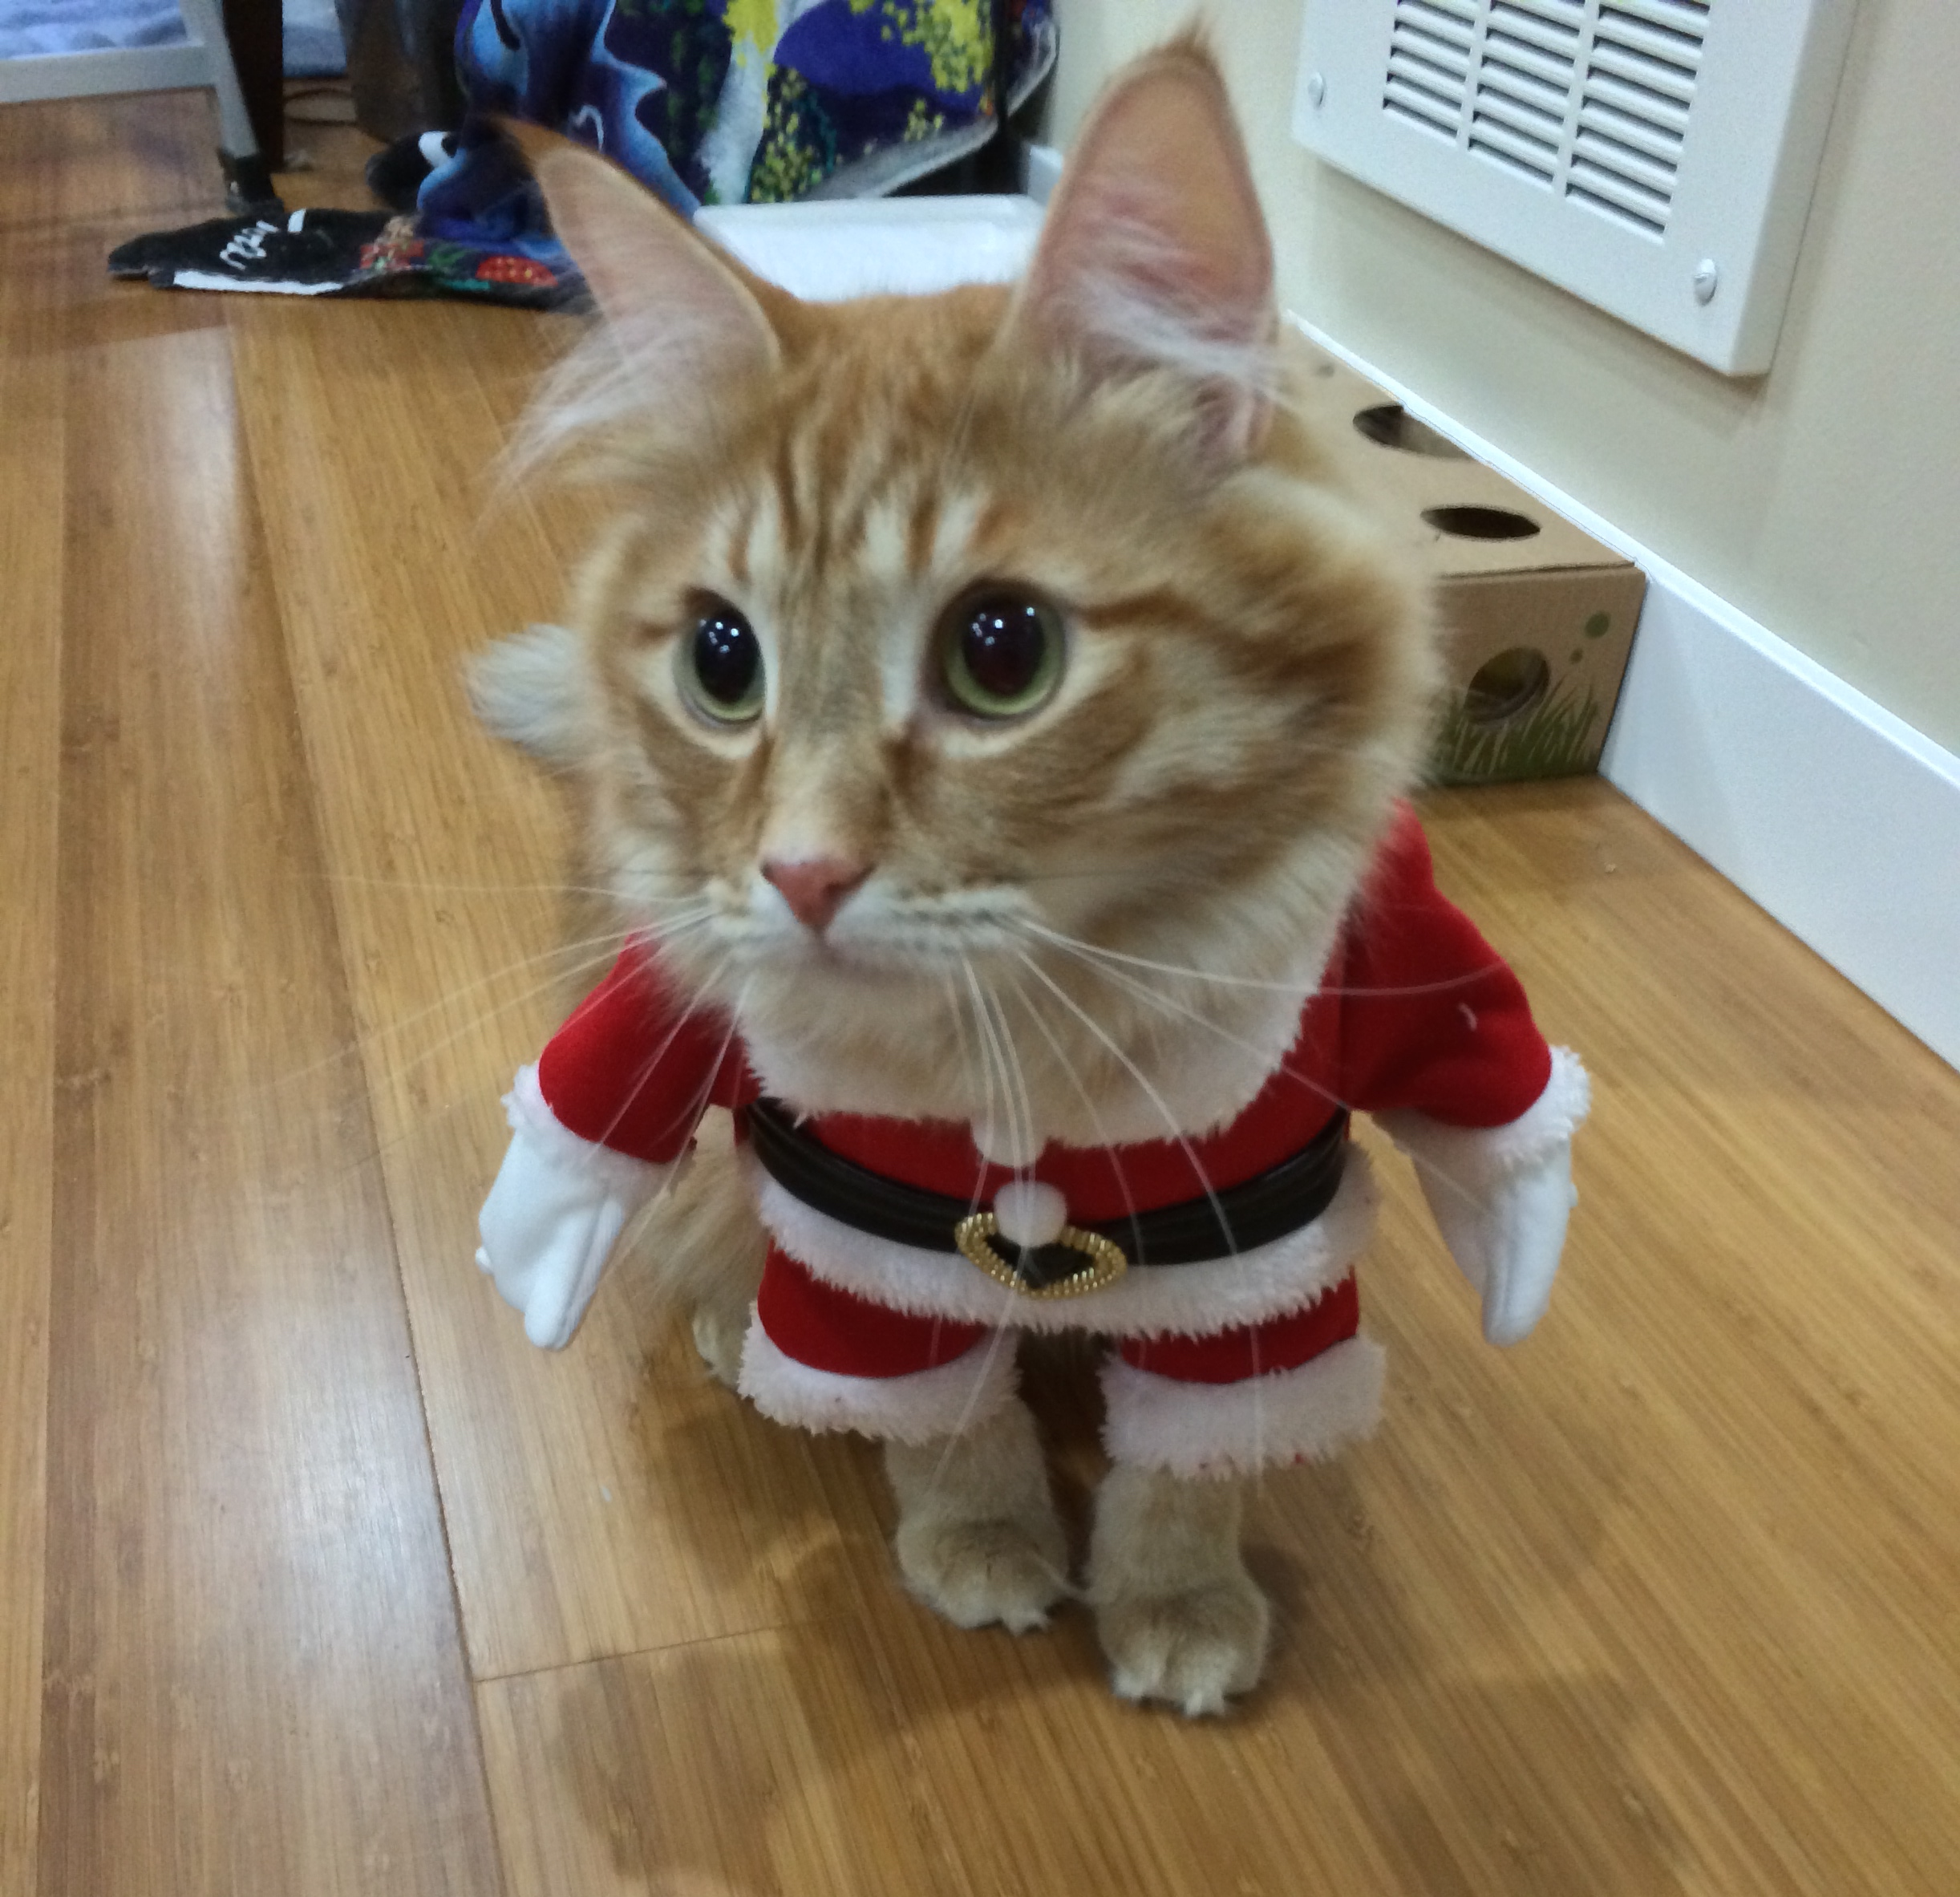 Does this outfit make my head look big?